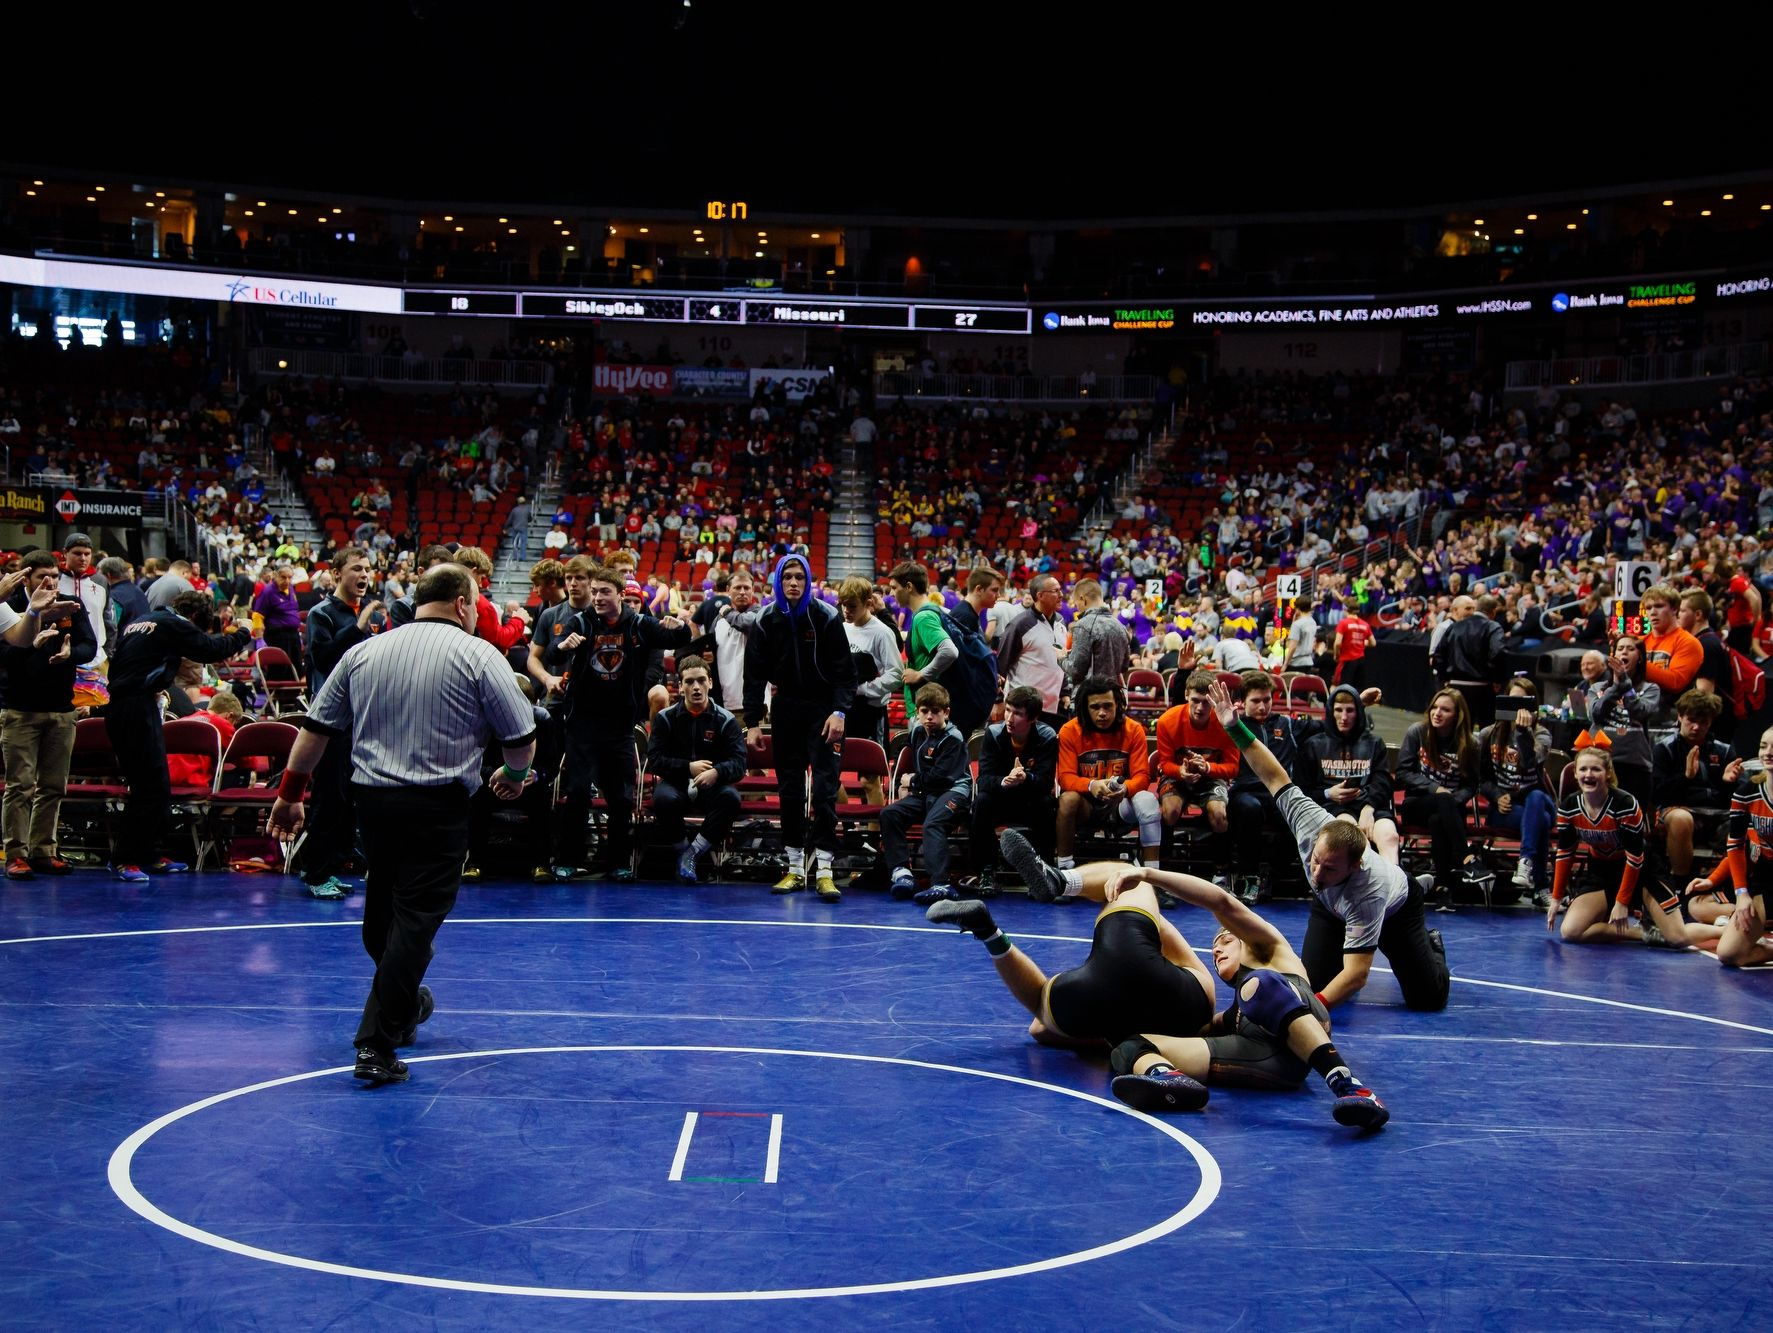 Washington's Karlton Skubal pins Atlantic's Nate Moen during their match at the Wrestling State Team Dual tournament on Wednesday, Feb. 15, 2017 in Des Moines.